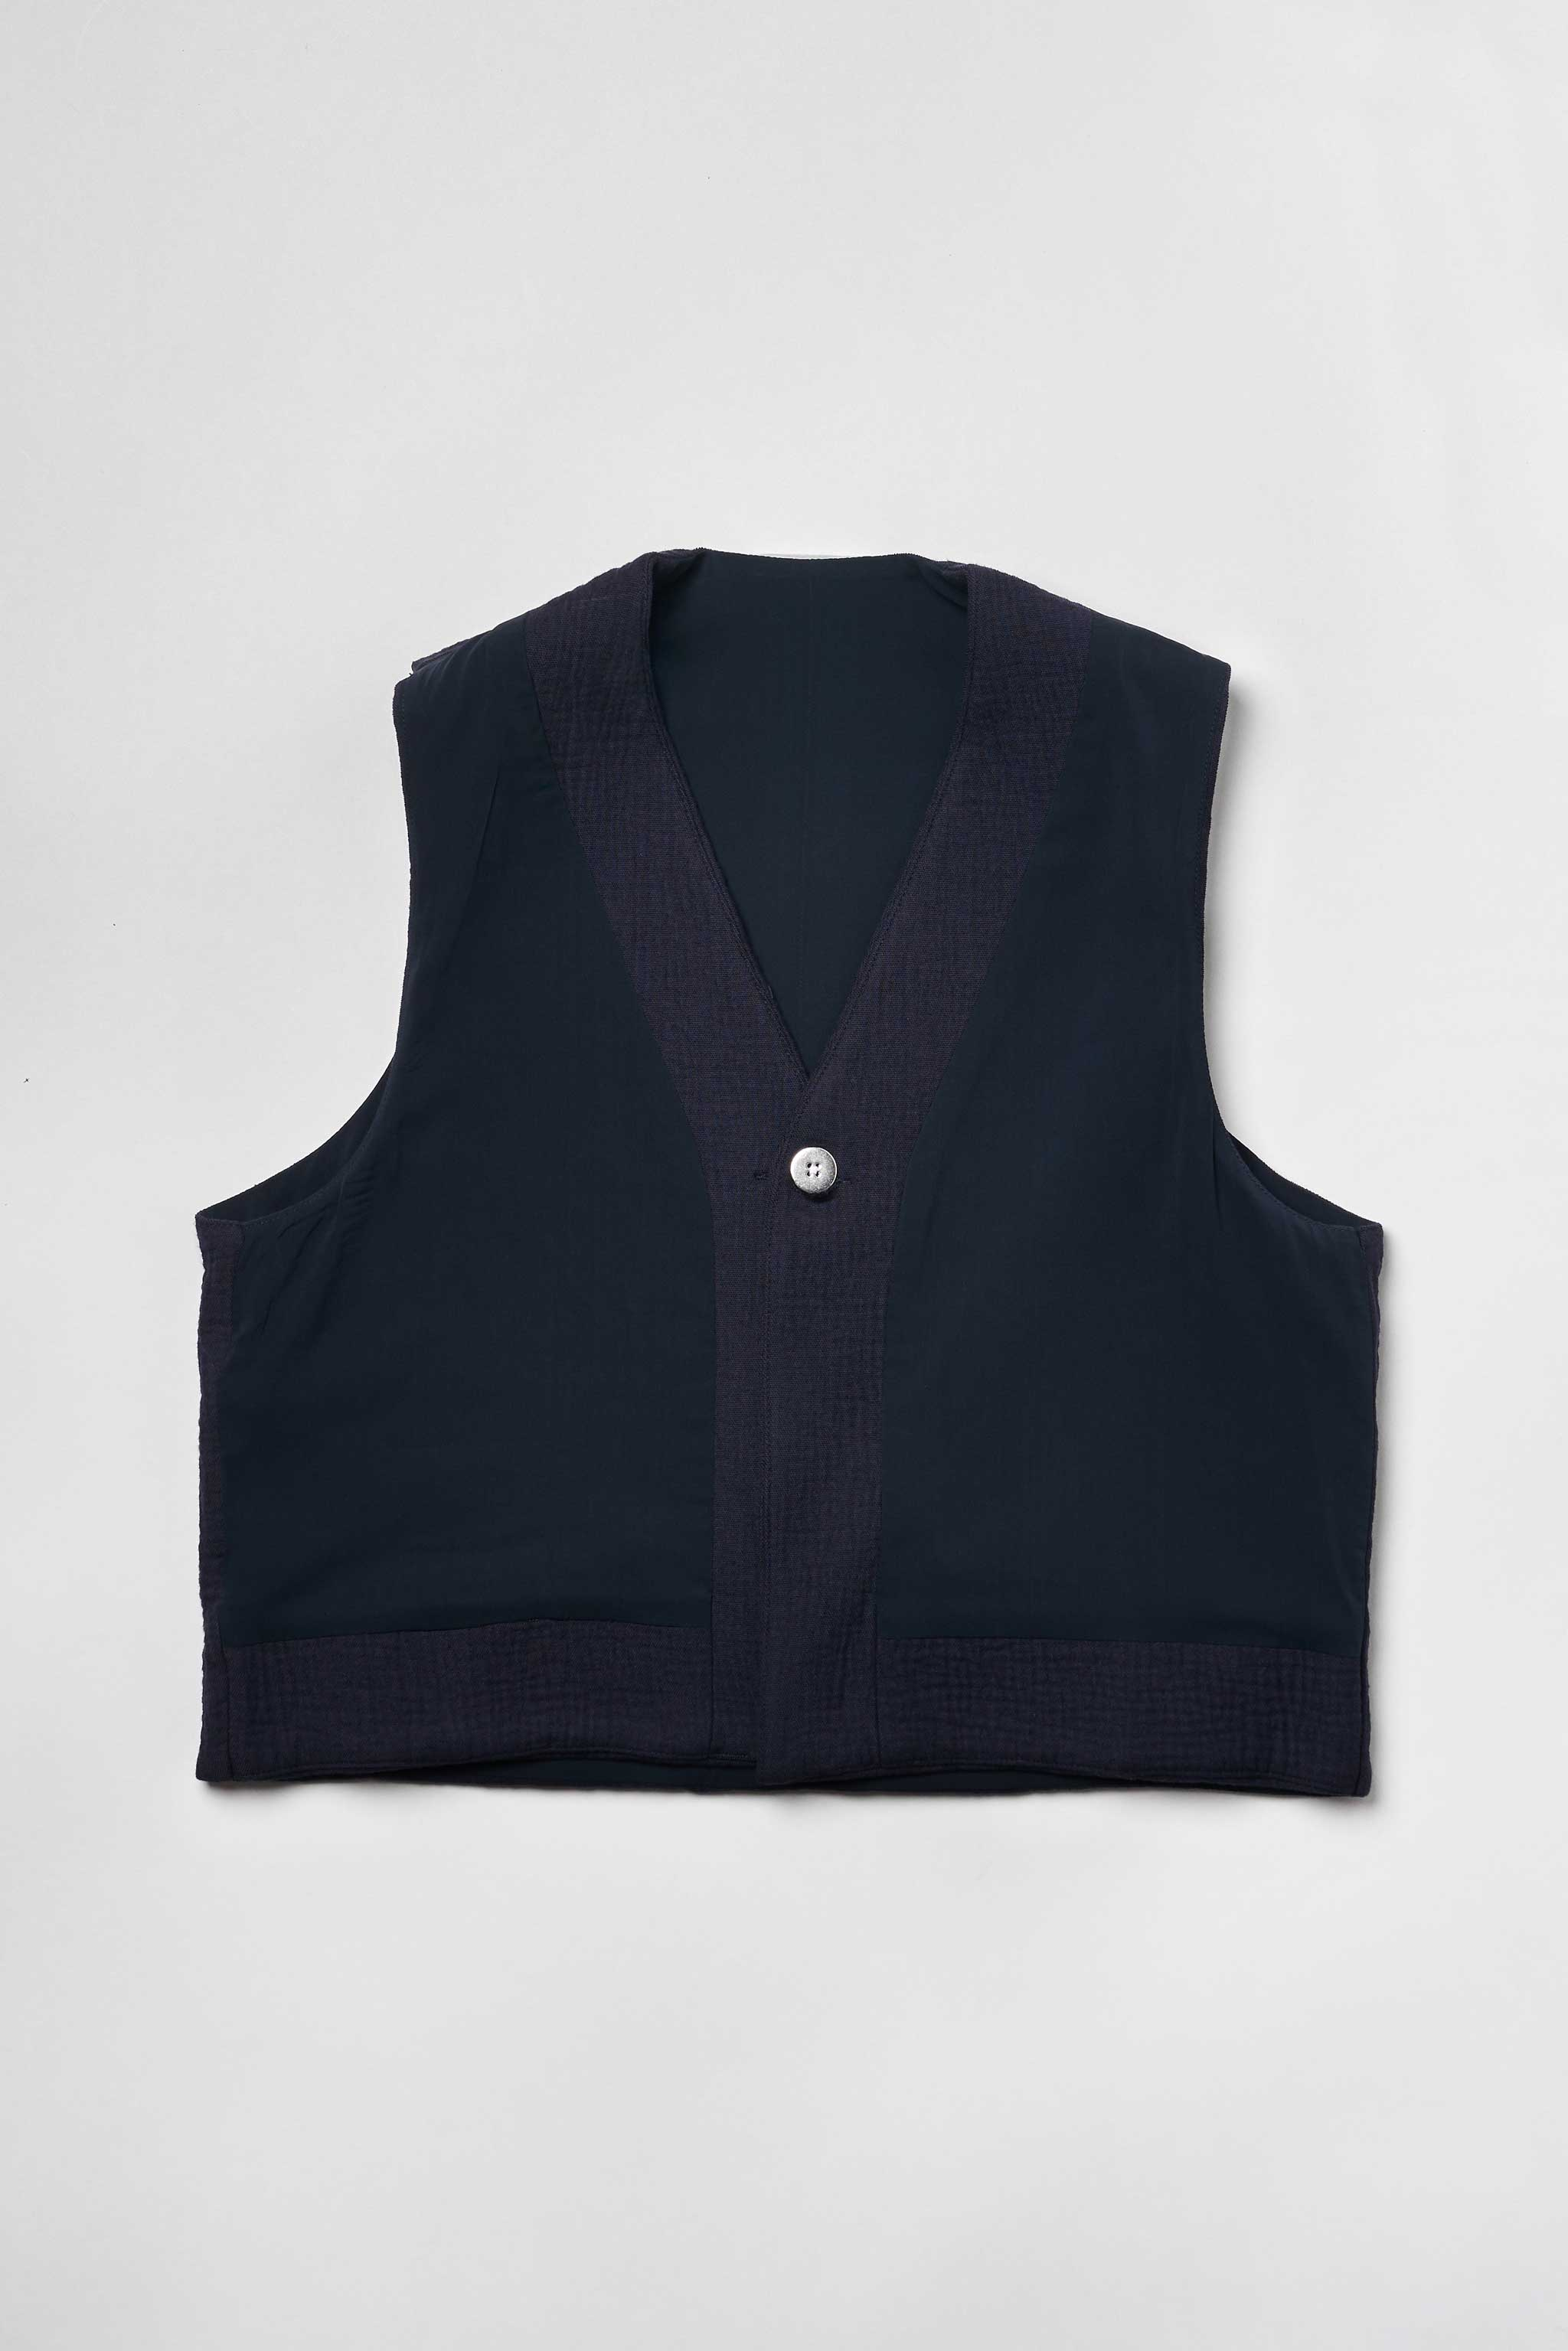 Goodfight All Access Vest Navy Reversible